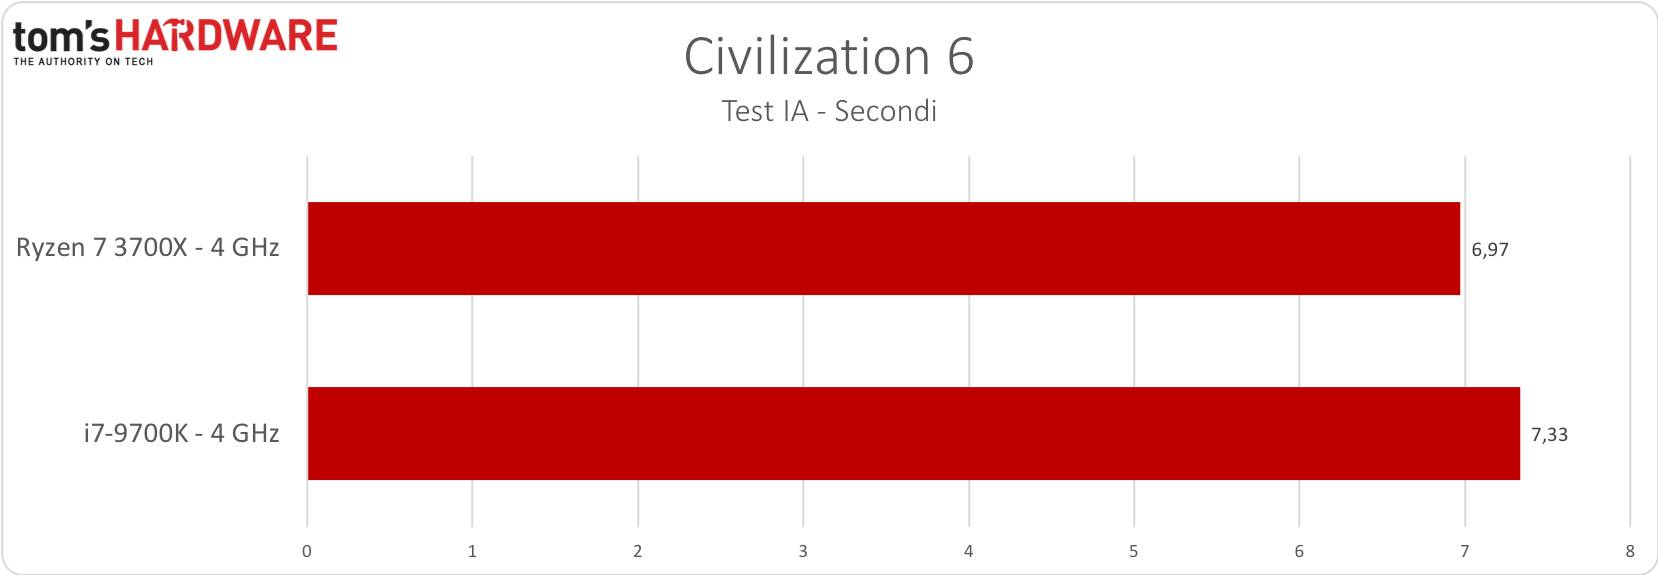 Civilization 6 - 4GHz